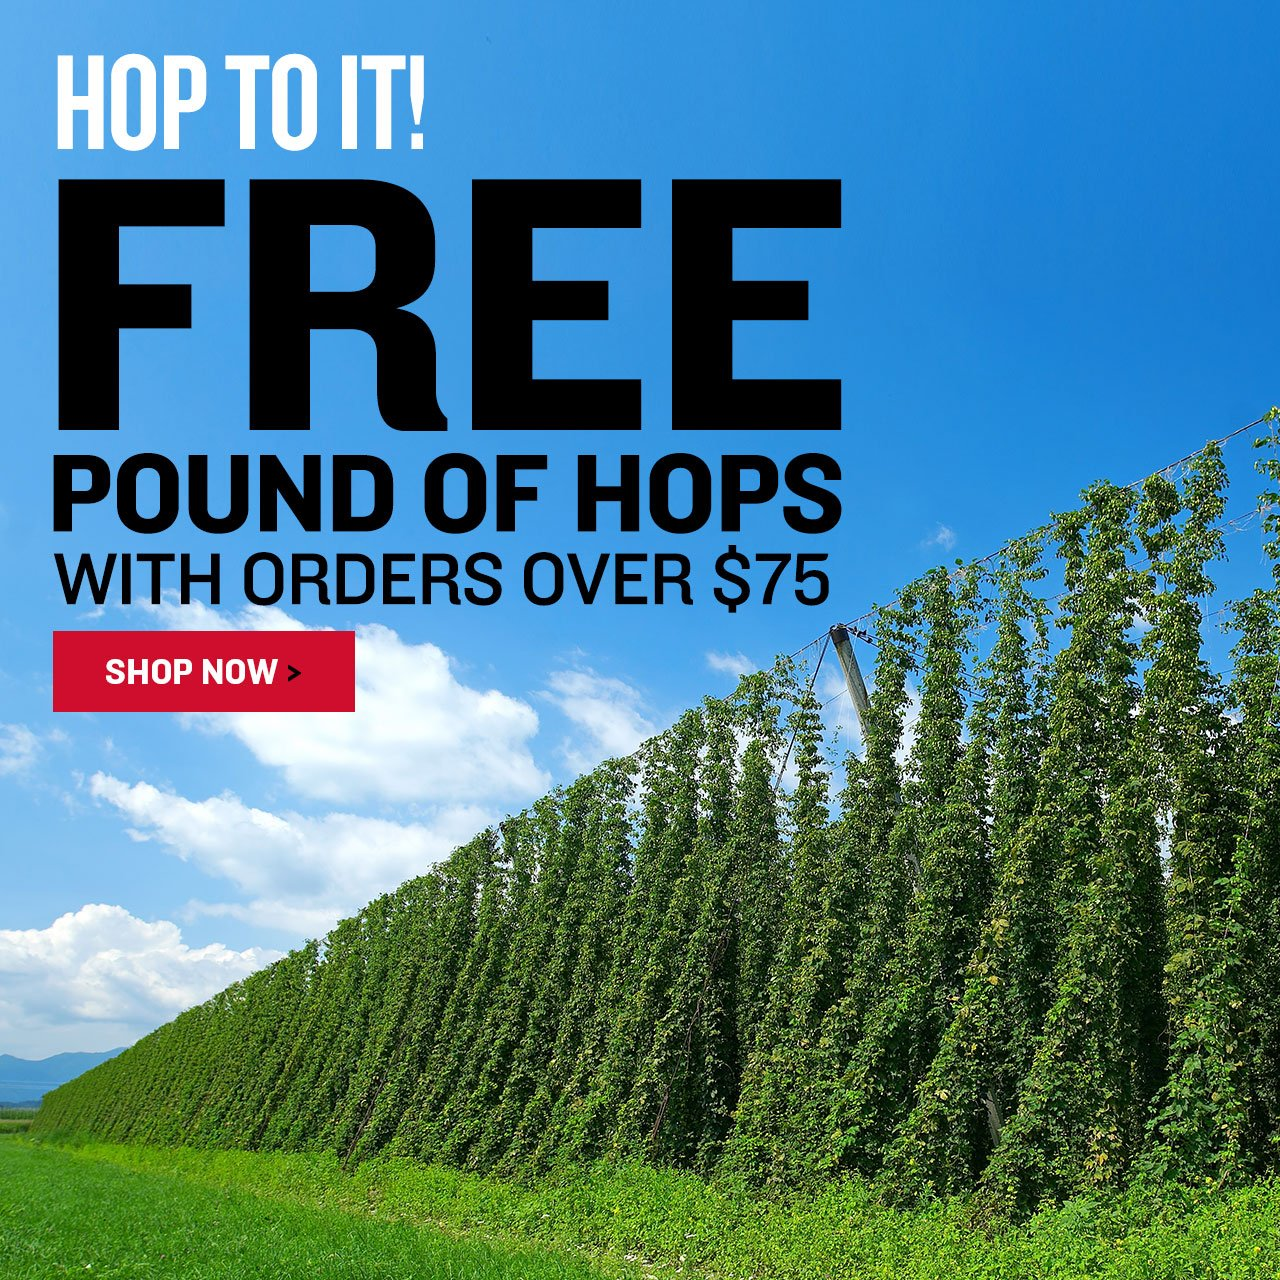 Free 1 lb of hops with orders over $75. Promo code: HP-75-HOPS-100